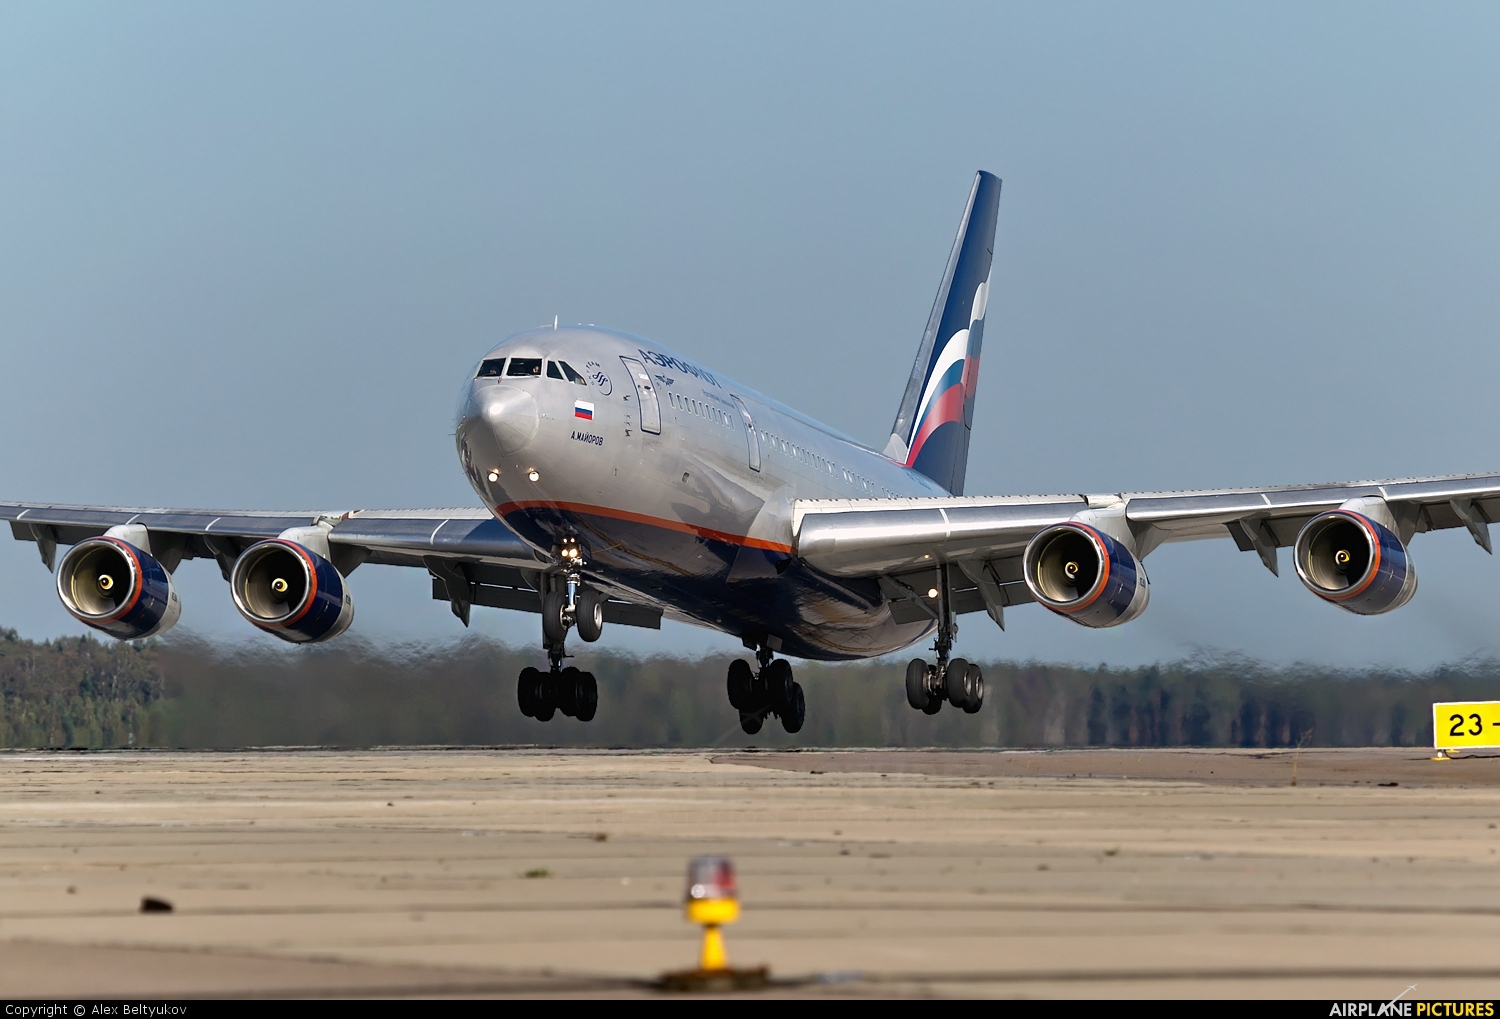 Russia To Resume Mass Production Of Il 96 Aircraft Russia Plans To Resume